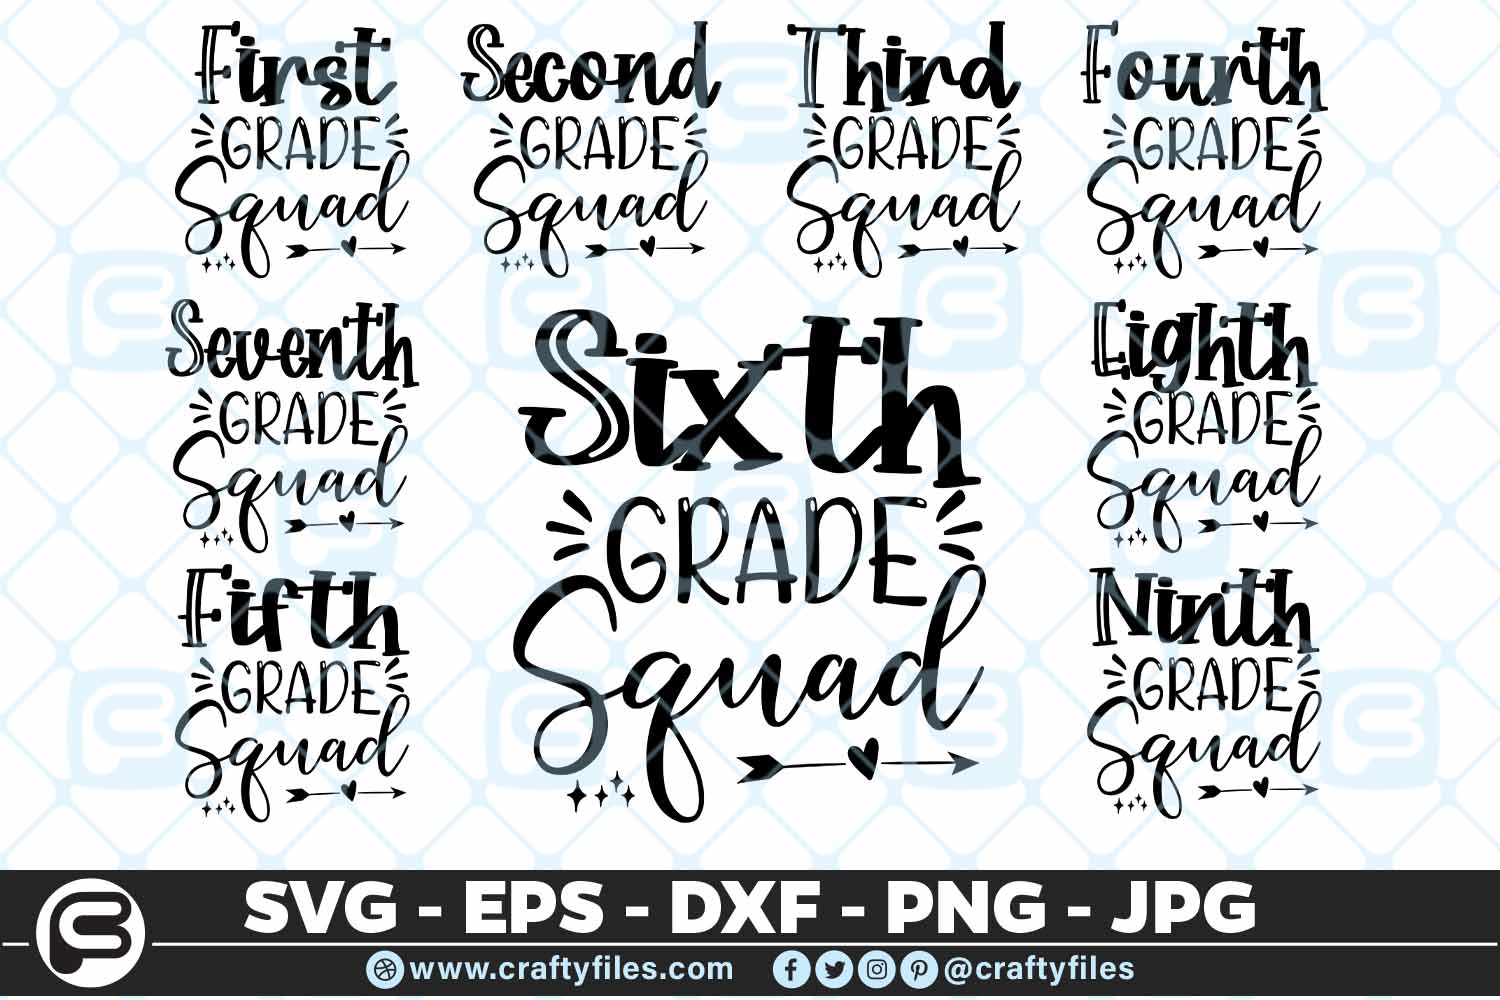 Back To School All Grade Squad Bundle Svg Arrow Png Eps Dxf Crafty Files